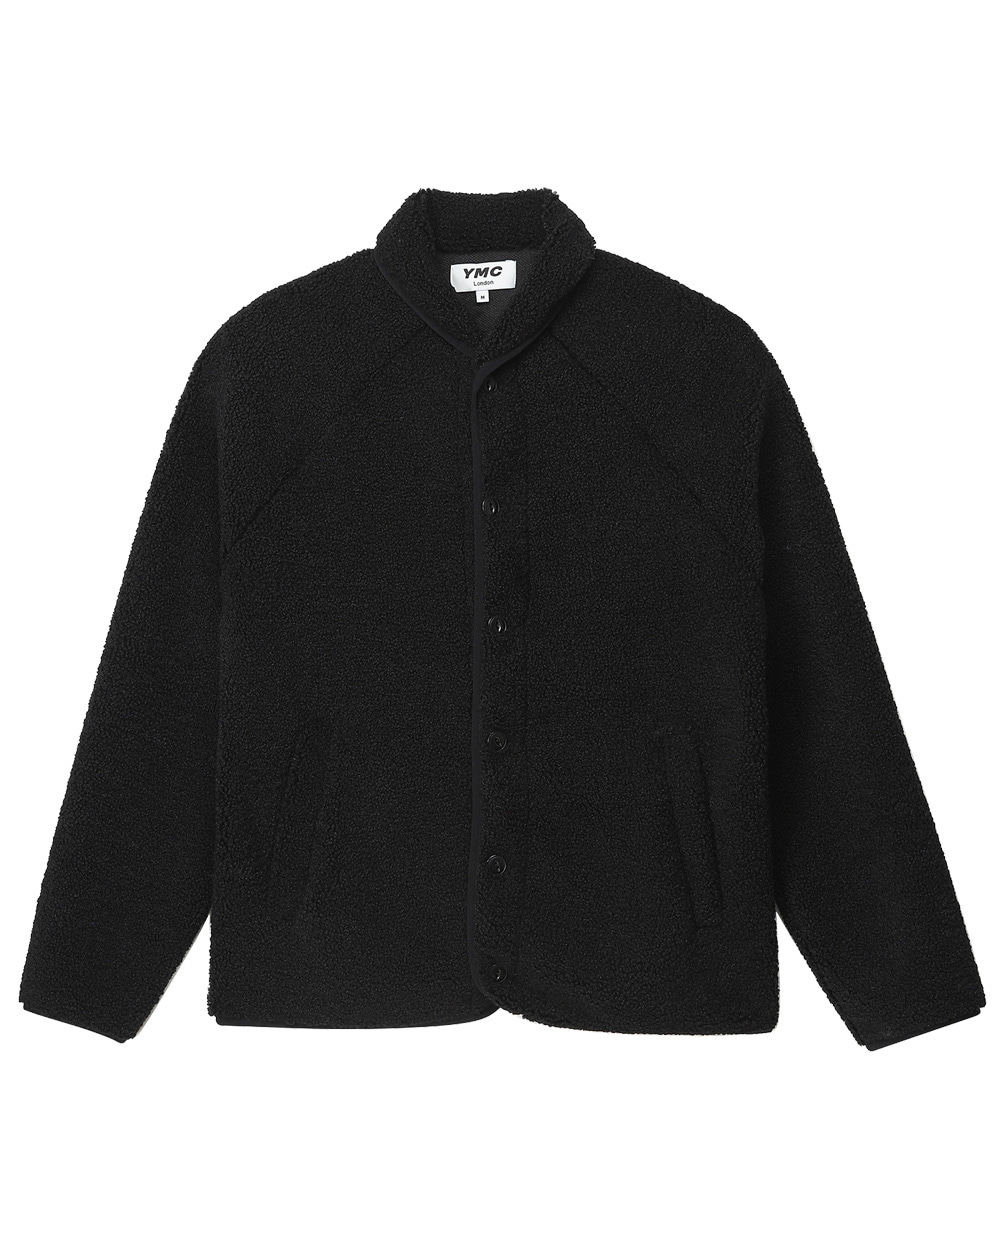 YMC Beach Jacket (Black)